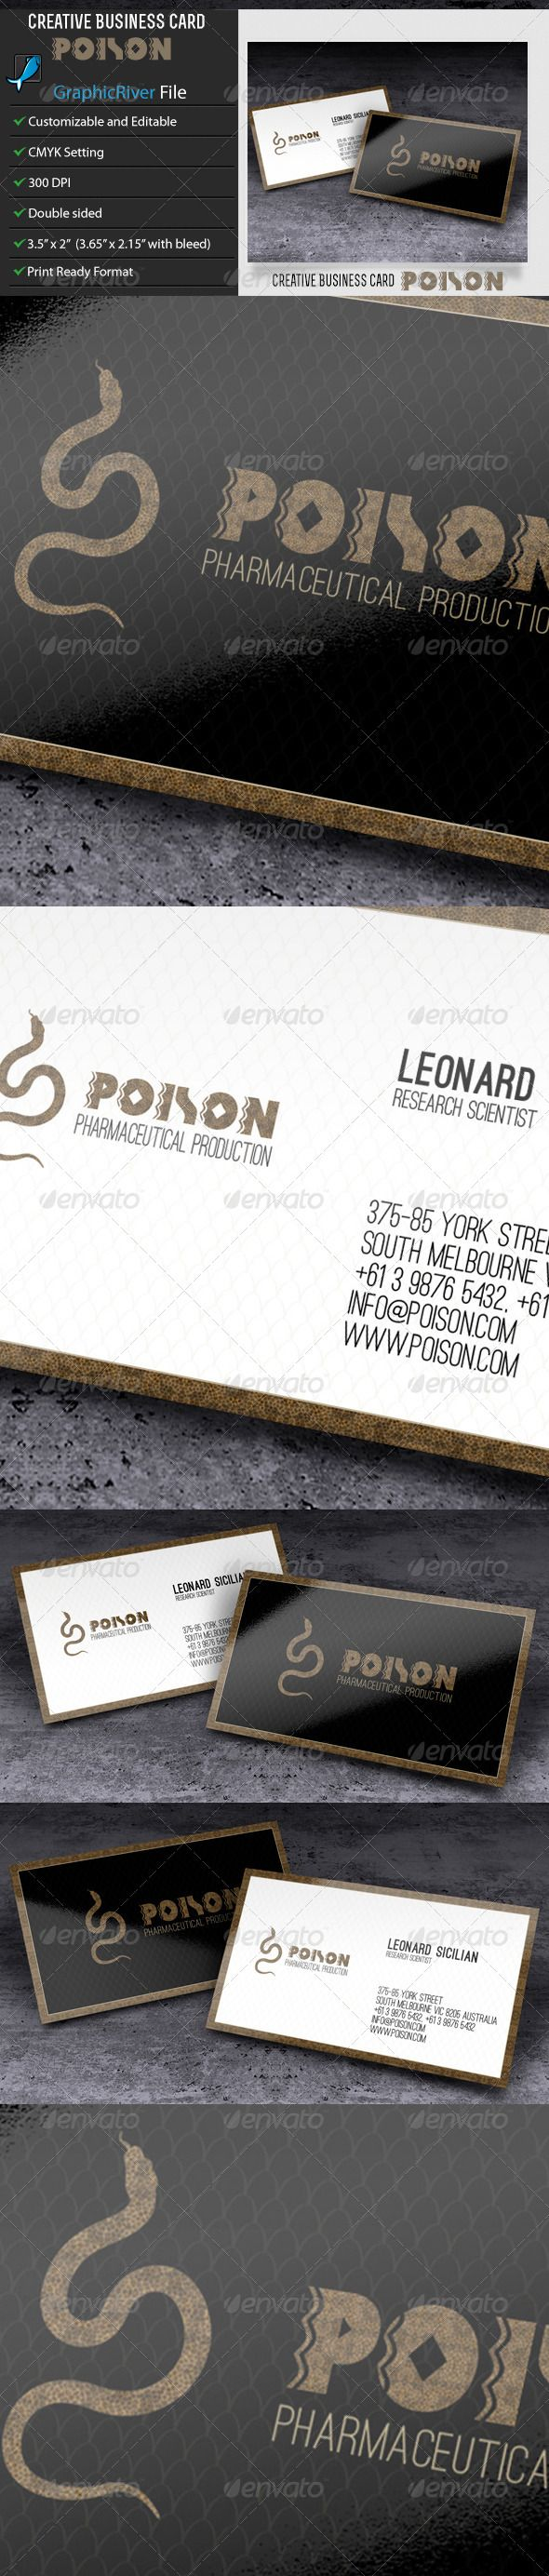 Creative Business Card – Poison